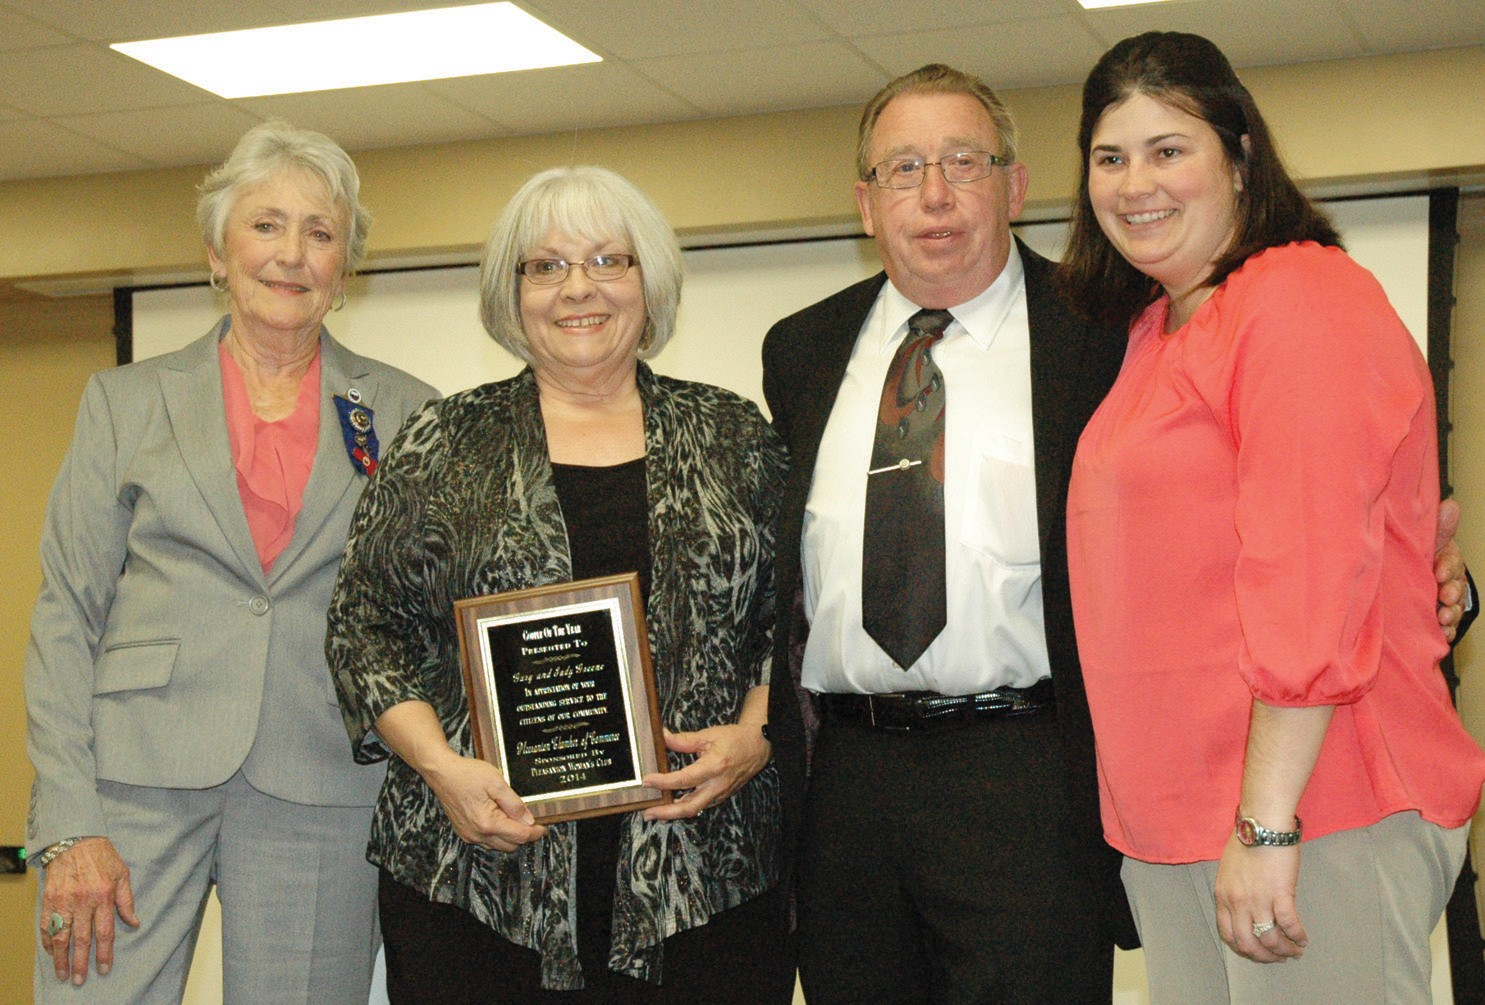 Patsy Troell (left) of the Pleasanton Woman's Club presented the Couple of the Year award to Judy and Gary Greene. Chamber 2nd Vice President Candace Trevino (right) assisted.